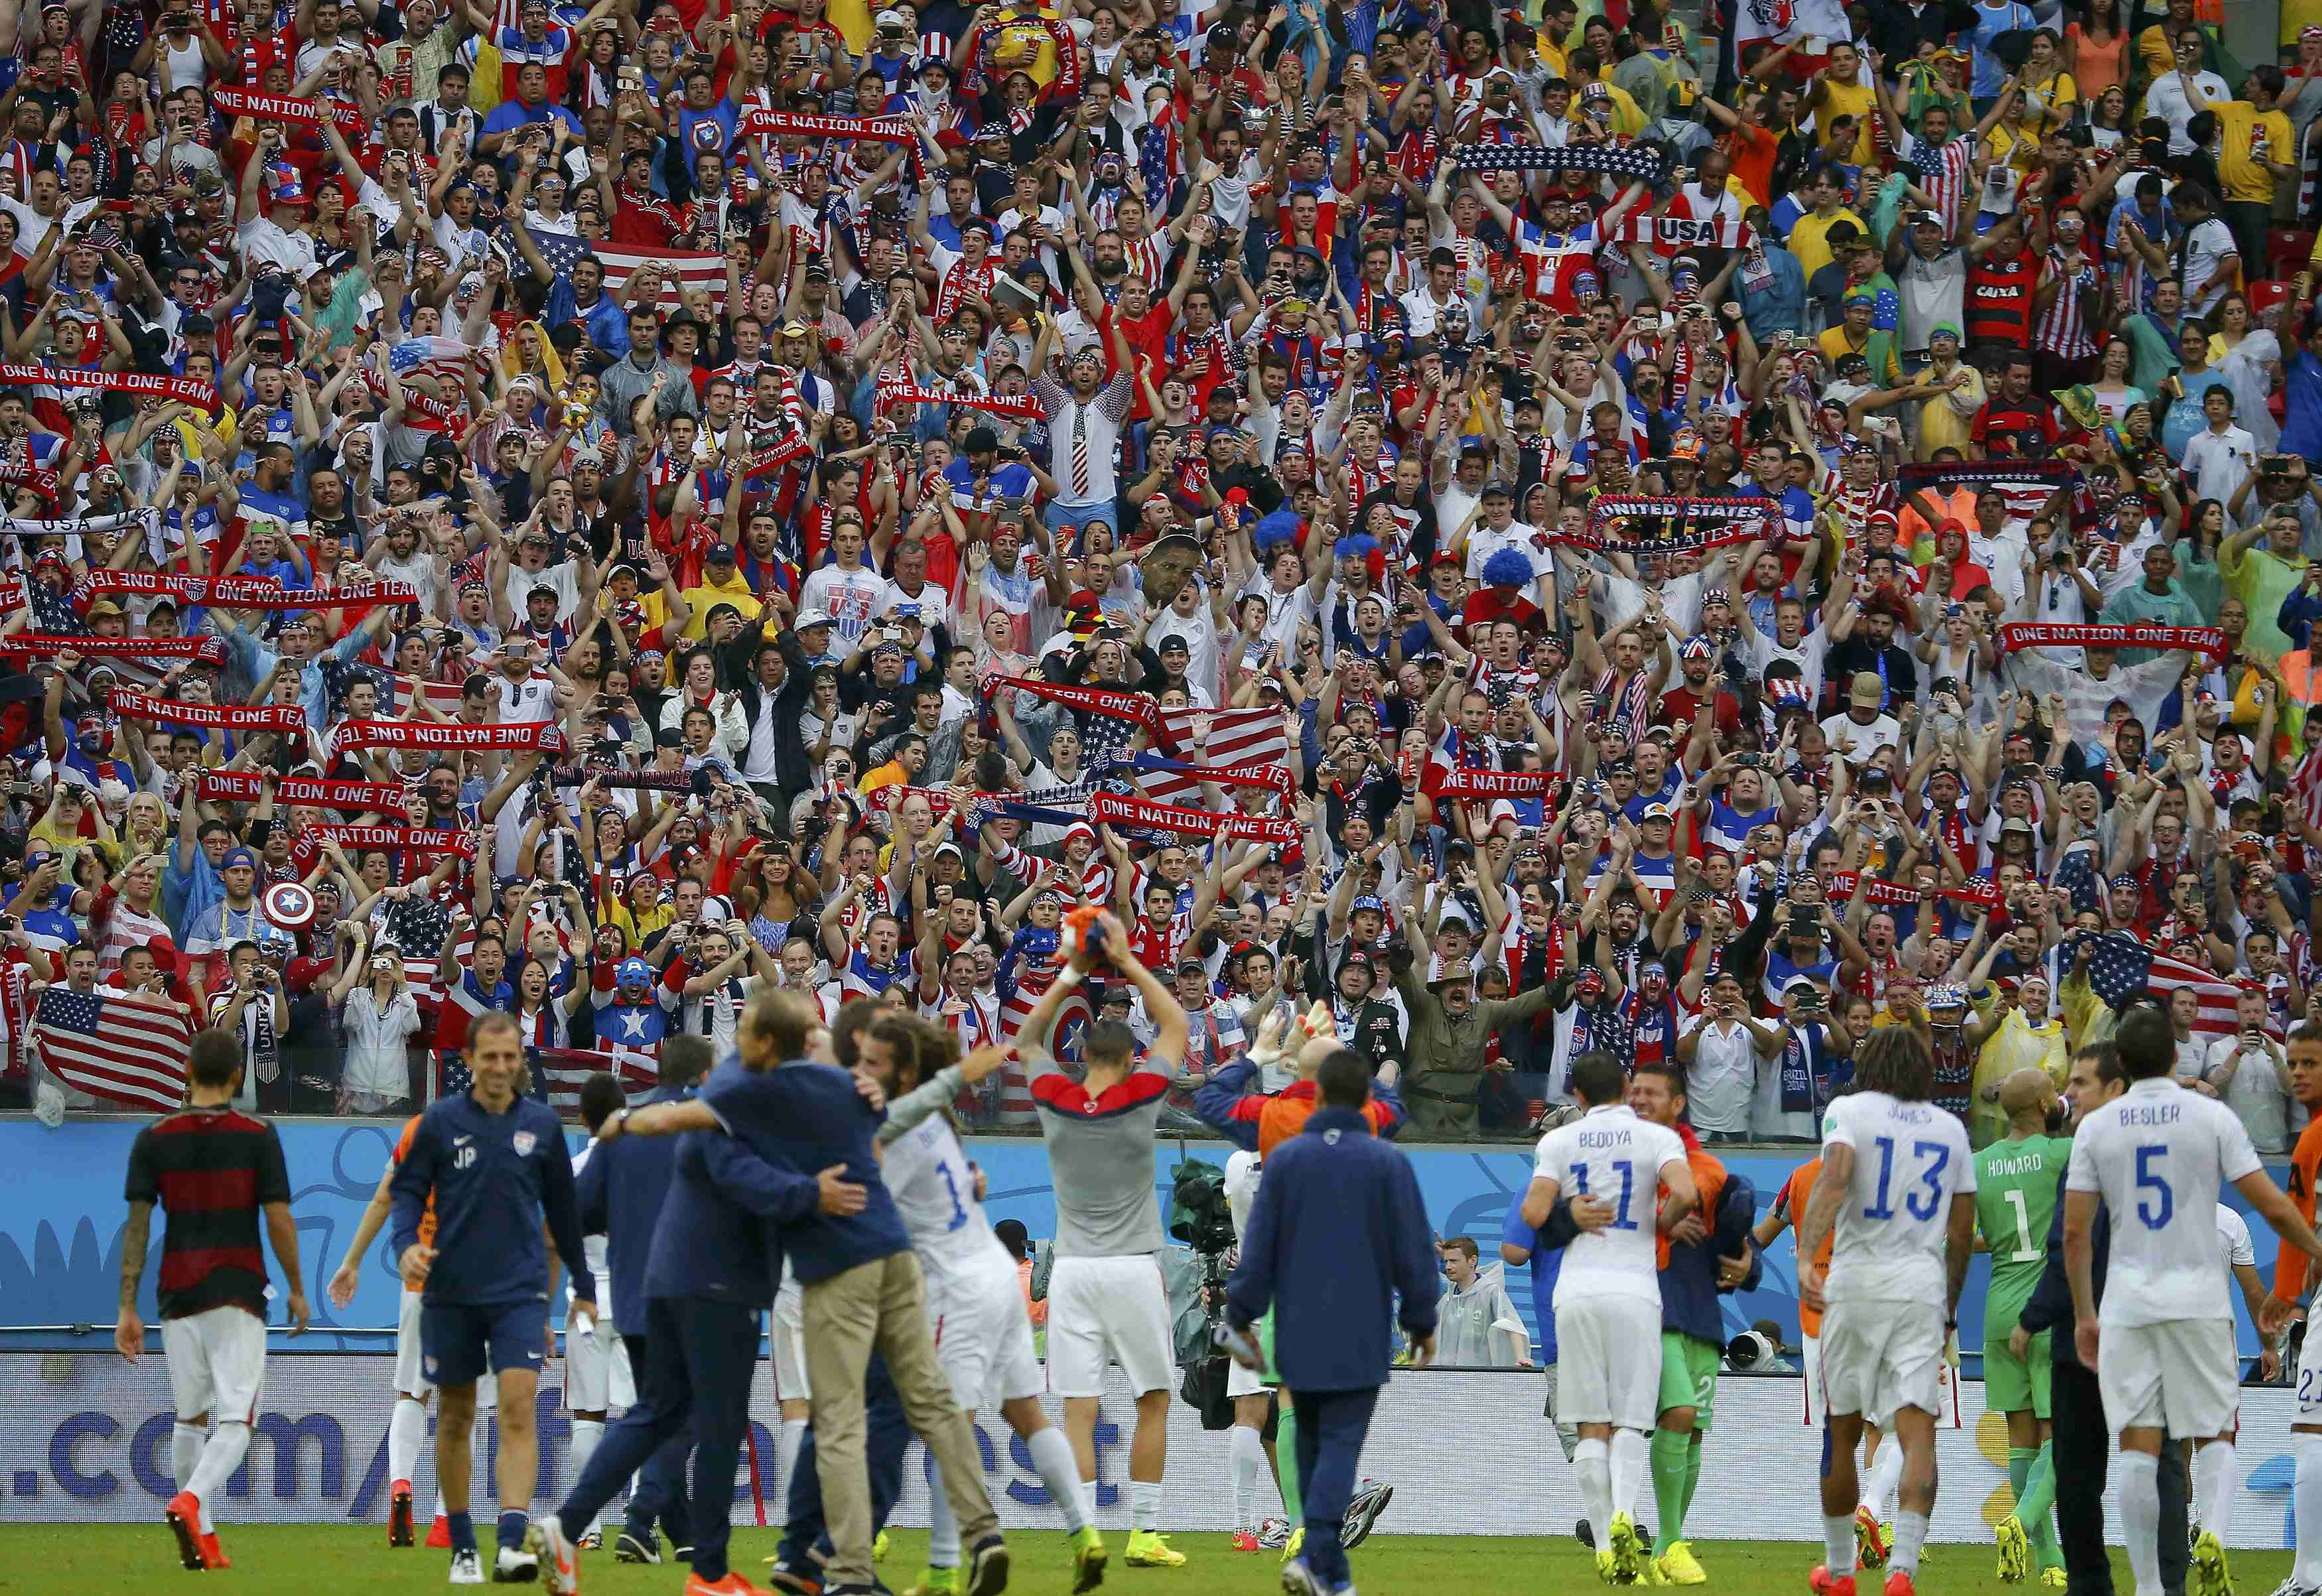 U.S. players acknowledge supporters at the end of their match against Germany at the Pernambuco arena in Recife, Brazil on June 26, 2014.